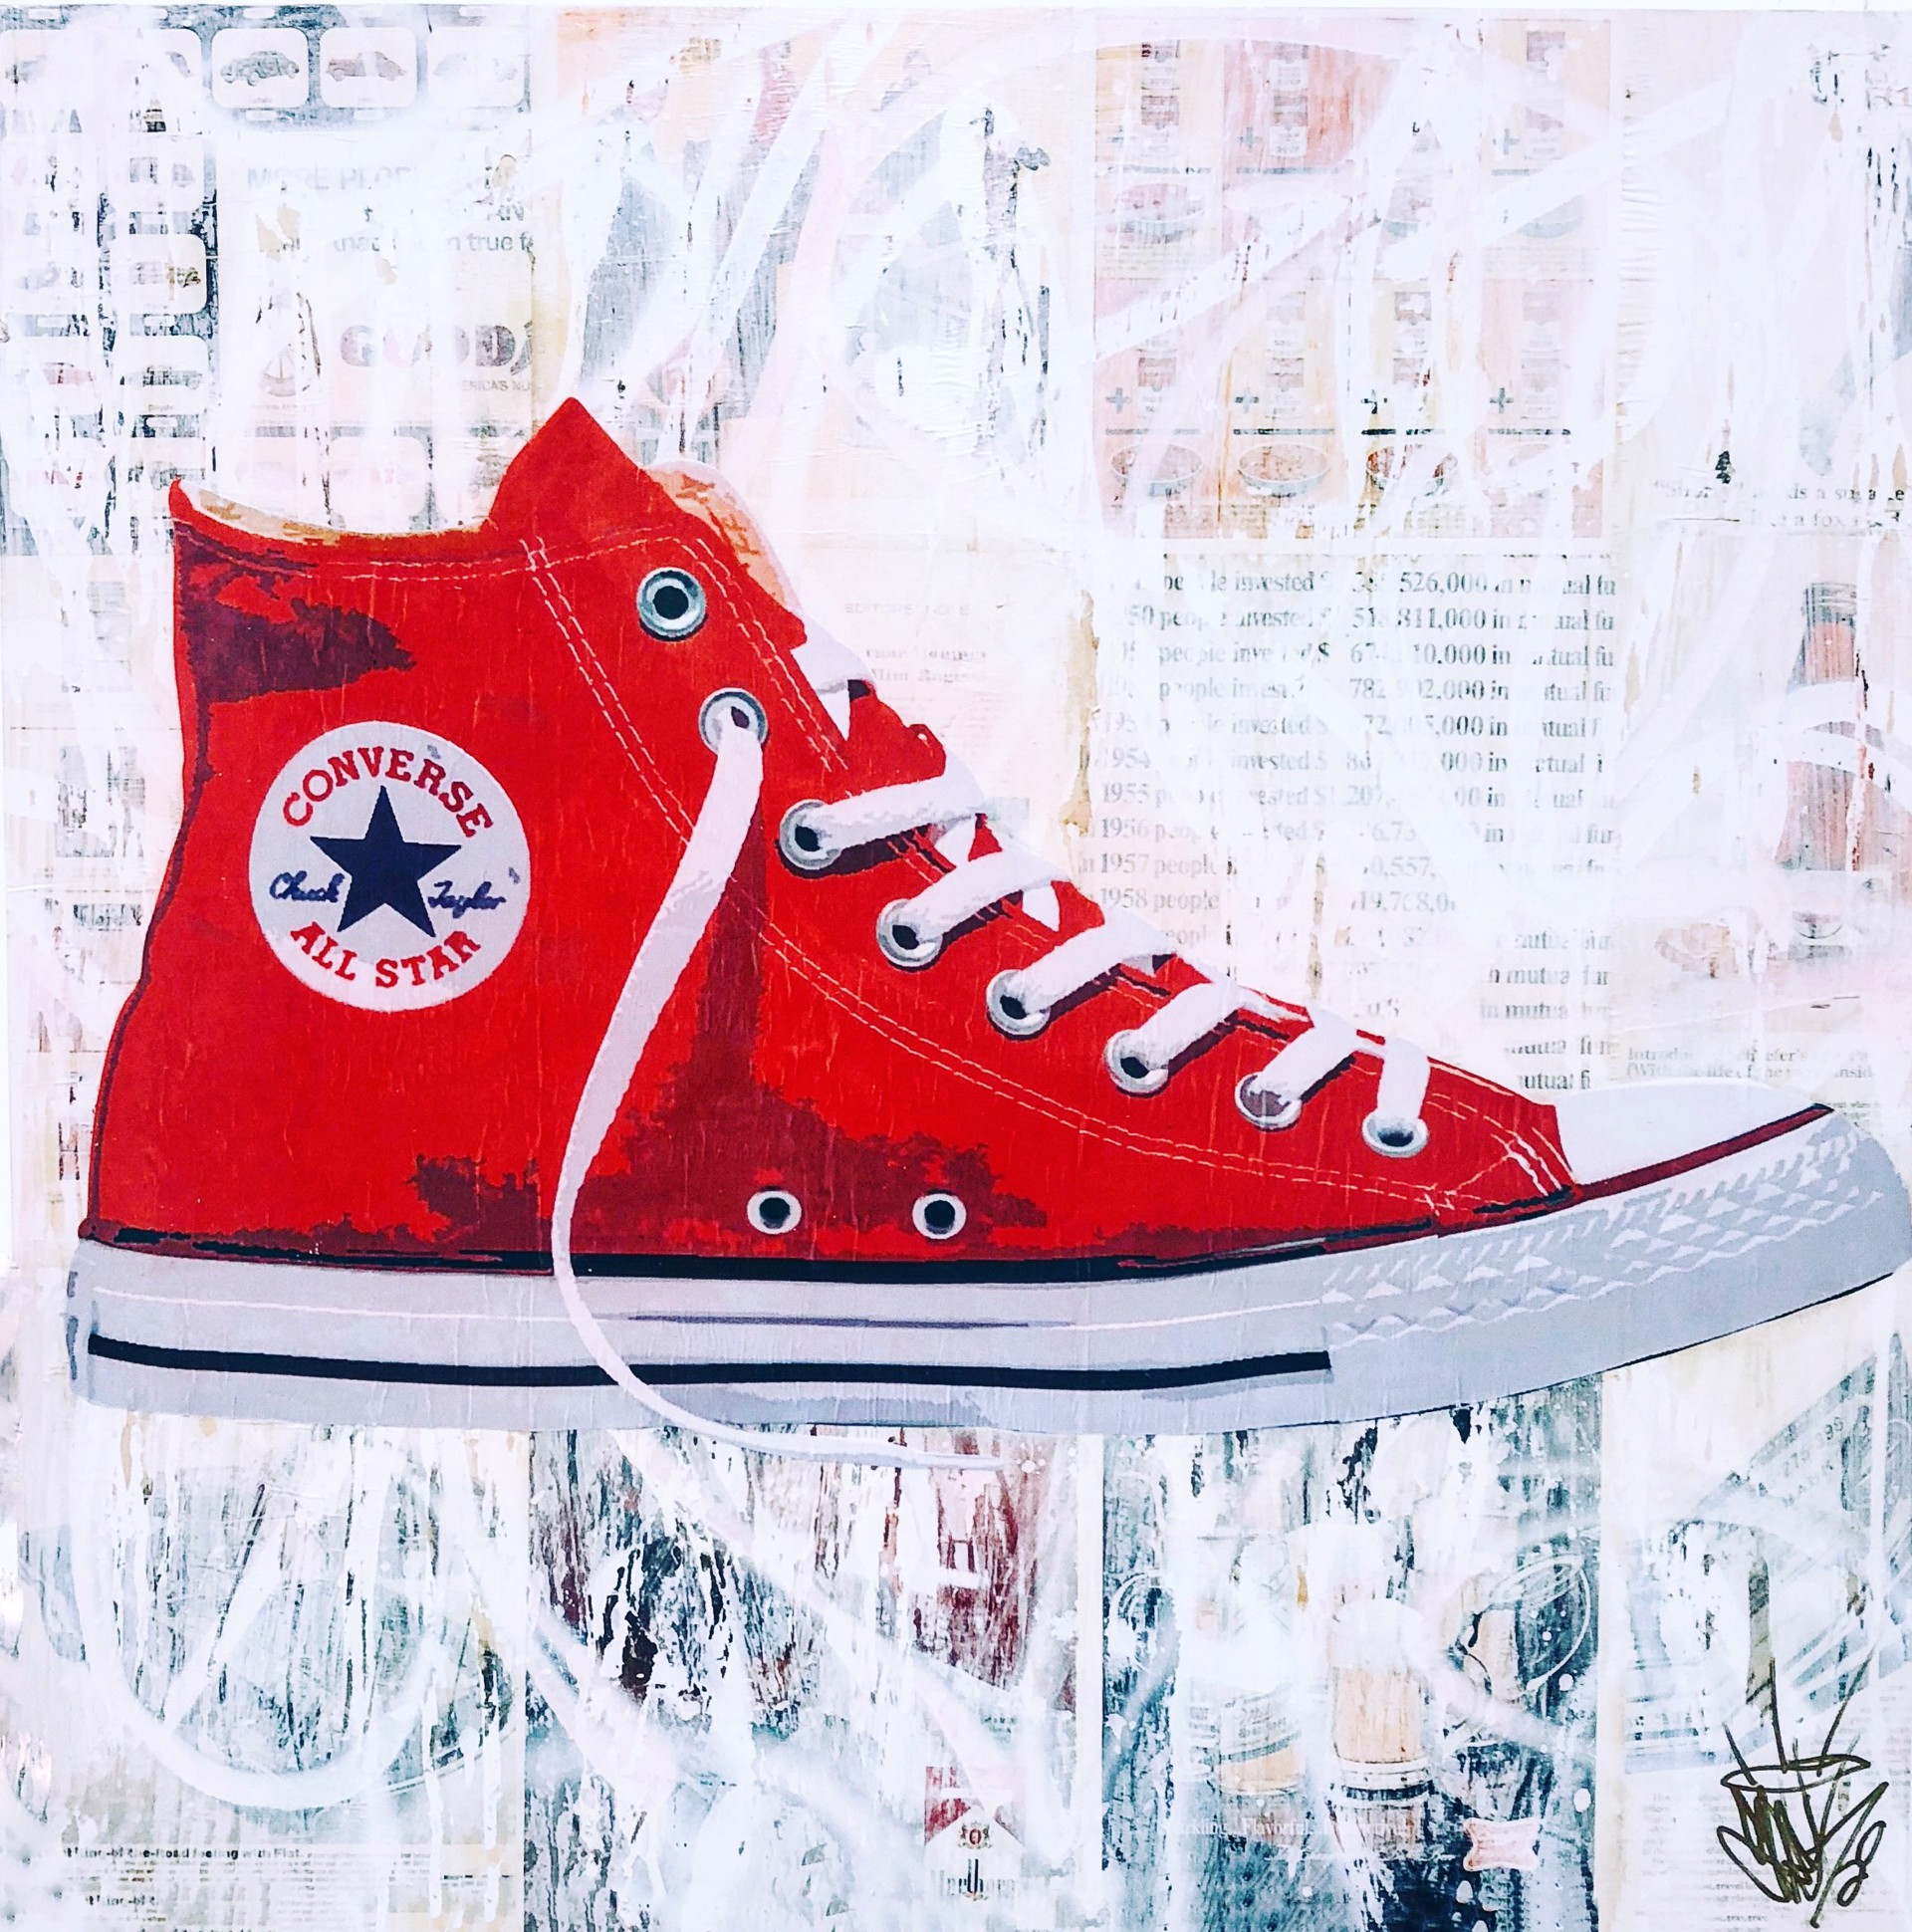 New Chucks - SOLD - commission available by Seek One